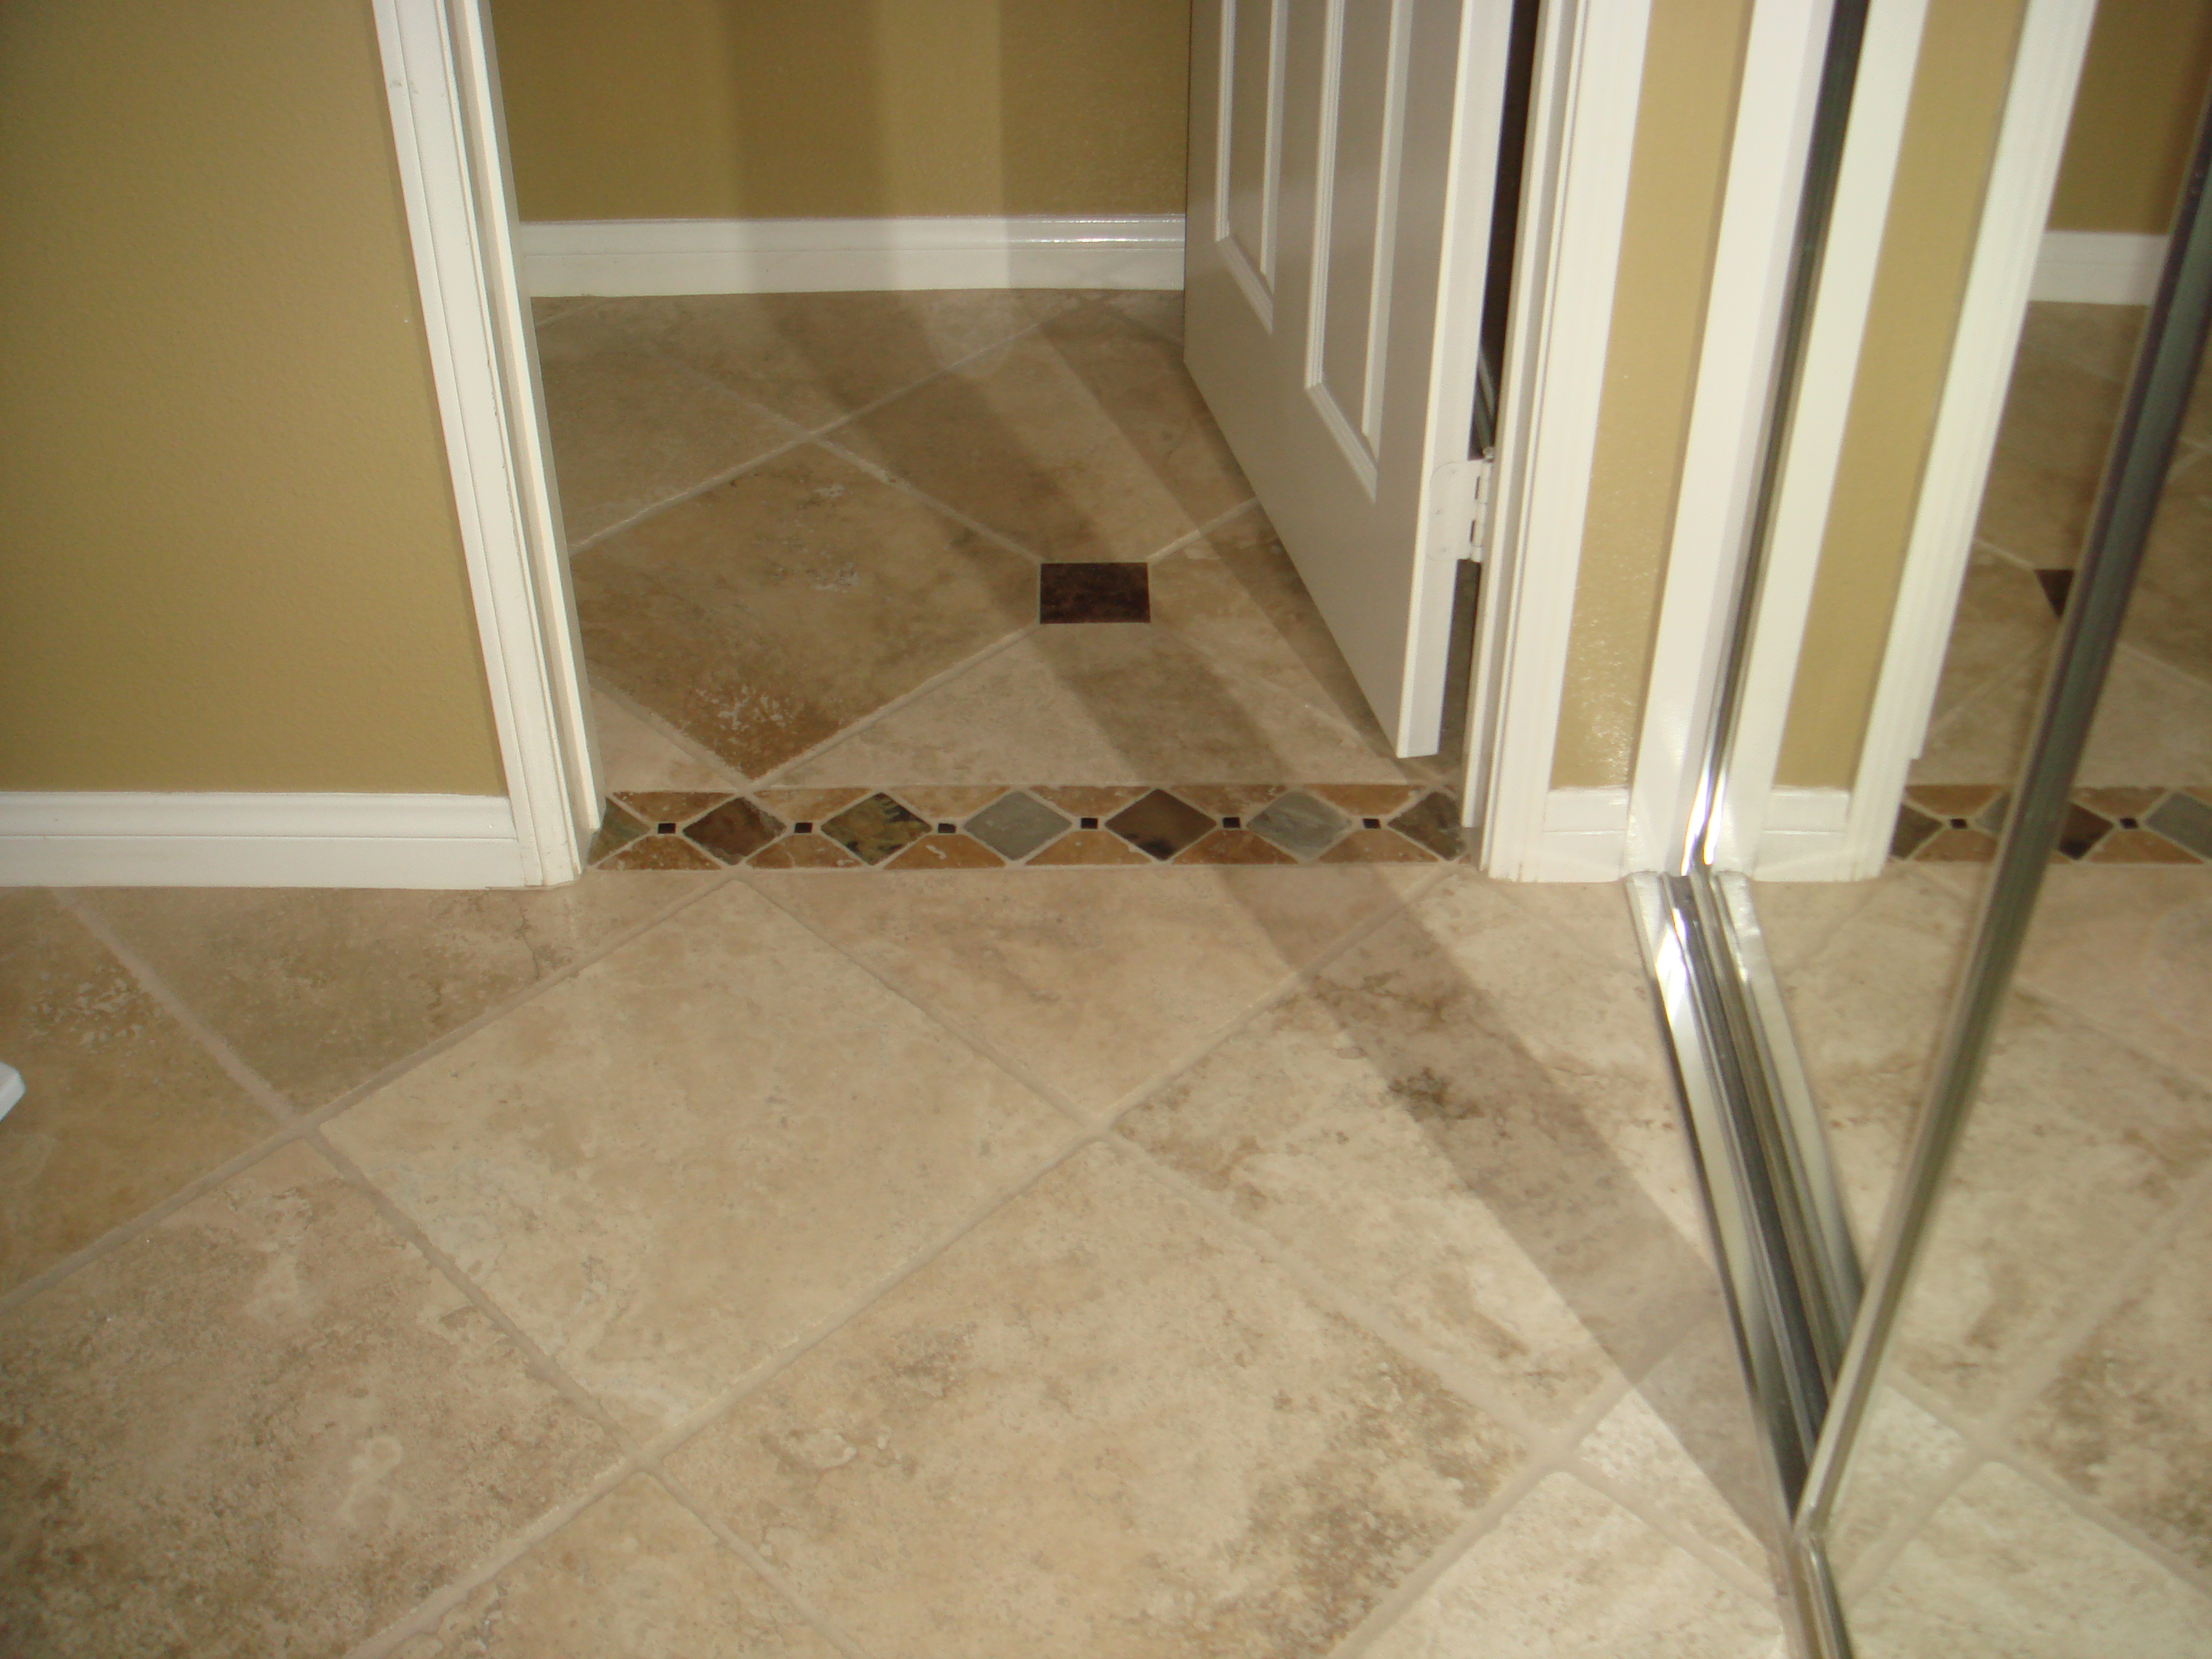 Installing bathroom floor tile large and beautiful photos photo to select installing bathroom Install tile shower